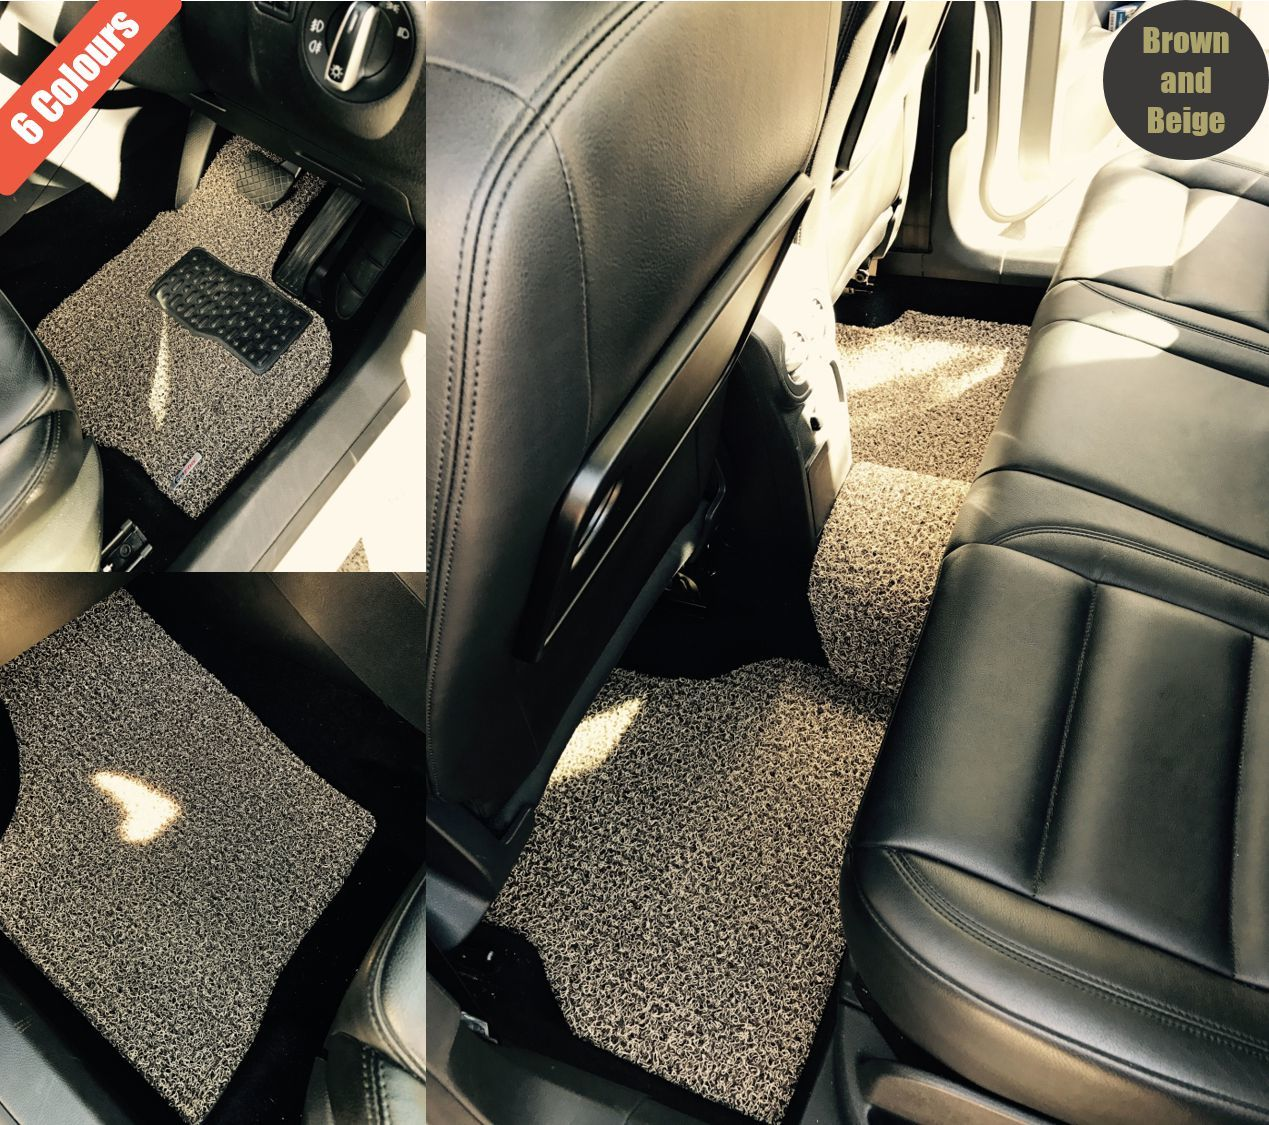 Goroo Custom Car Floor Mats - Brown and Beige